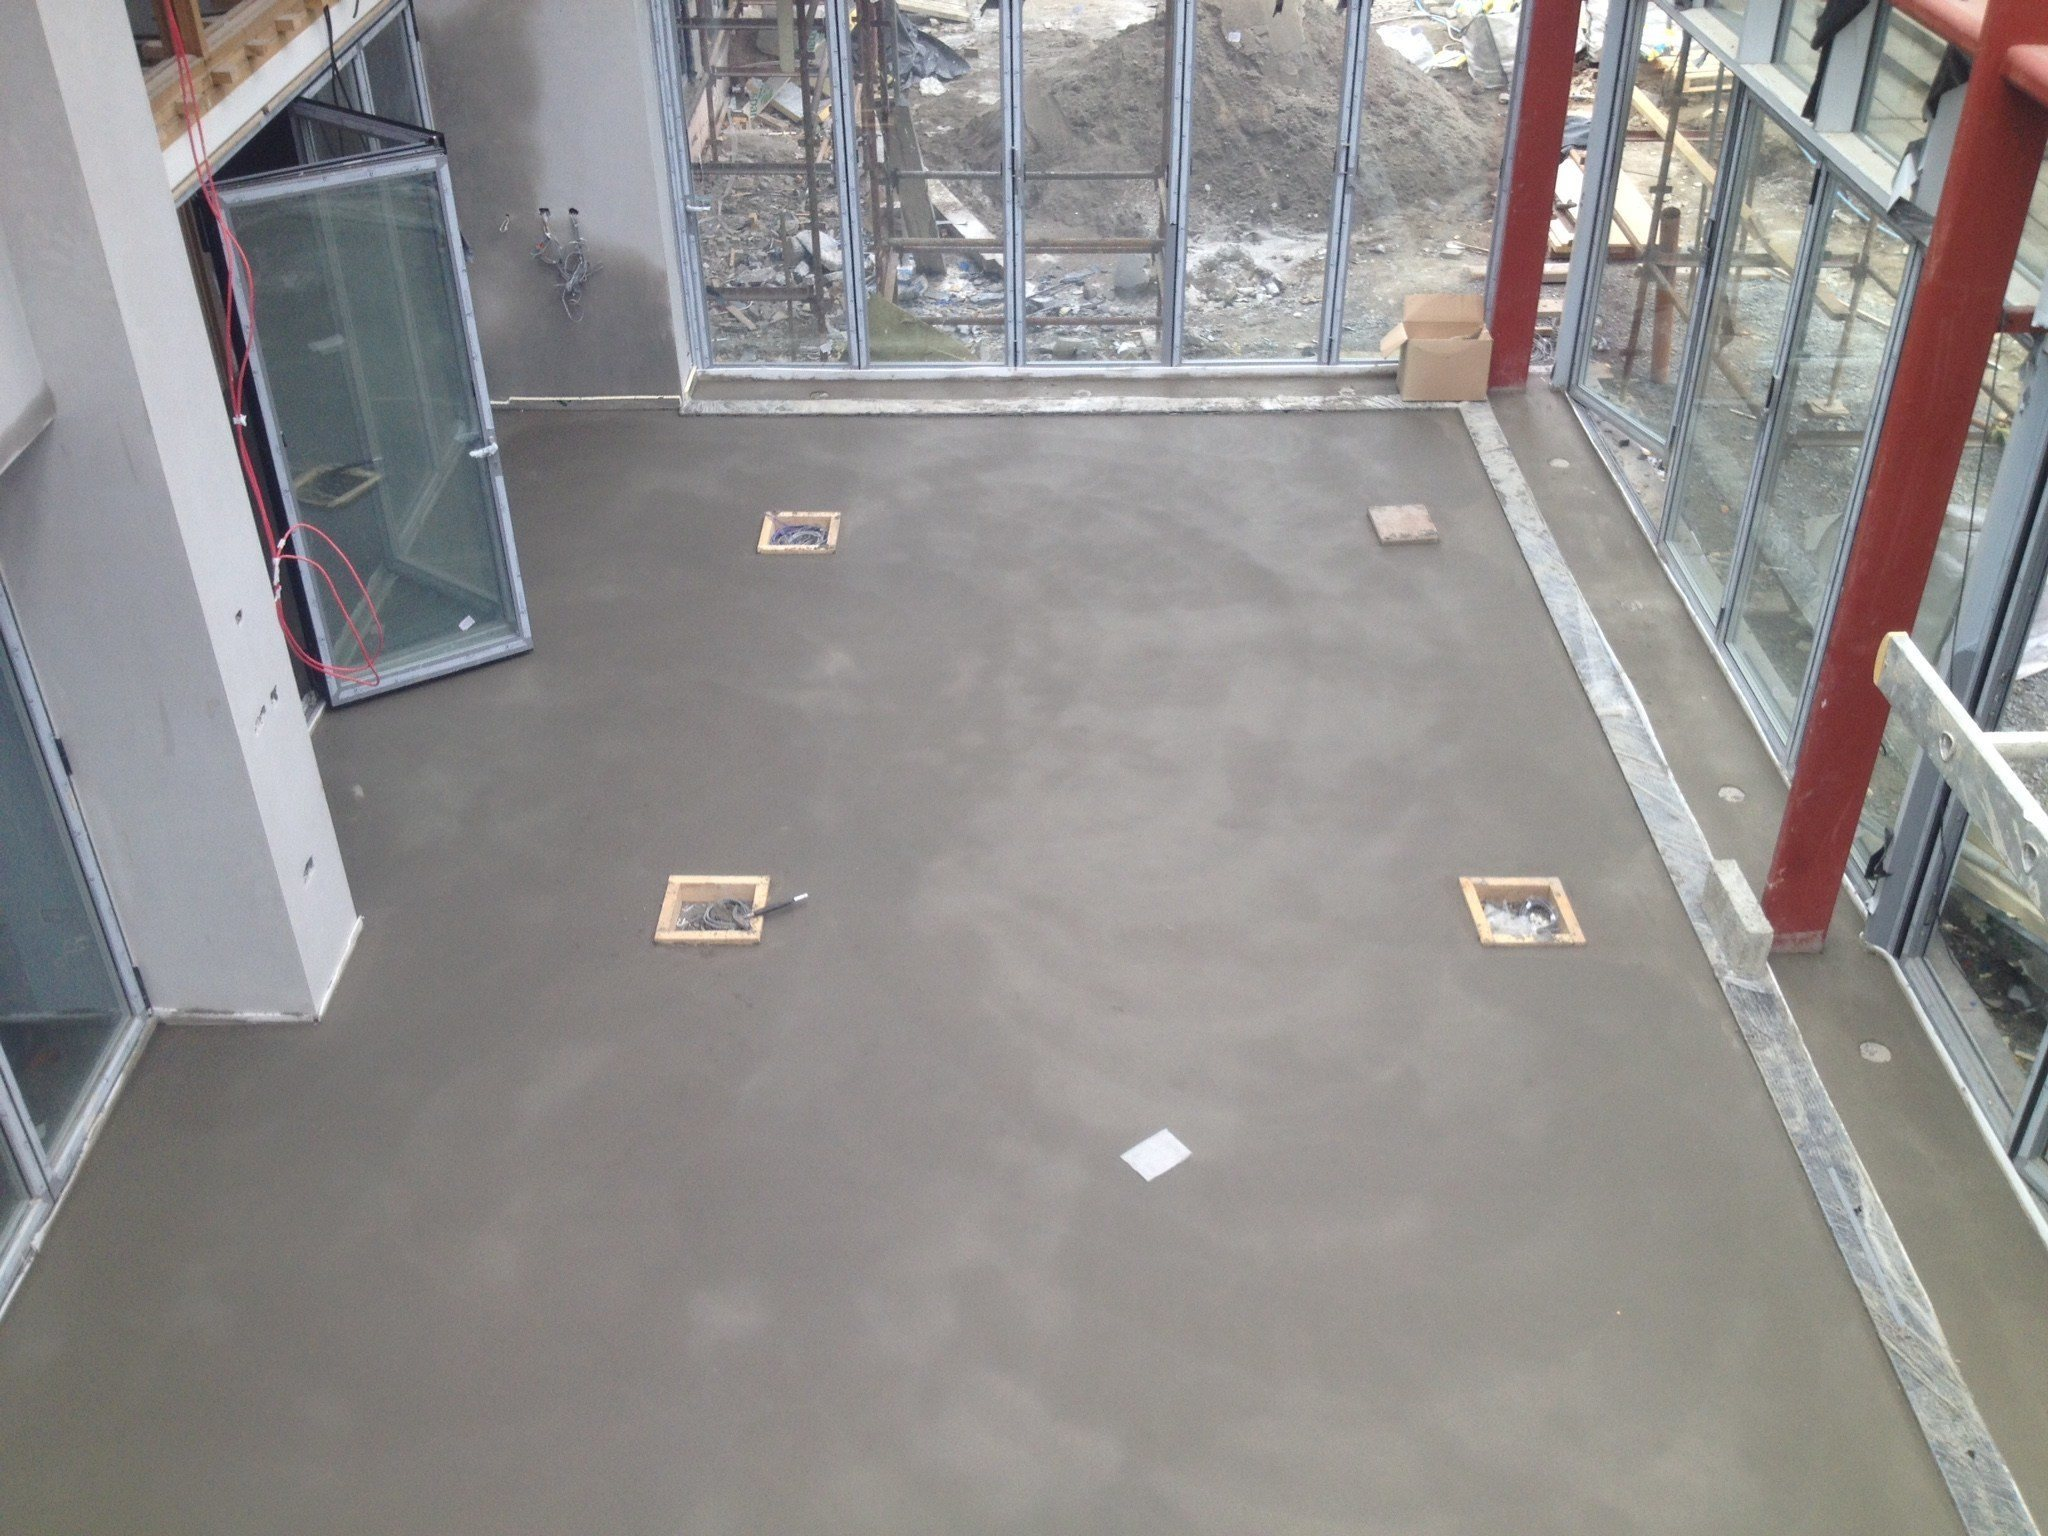 Sand cement floor screed drying times carpet review for Floor screed drying times